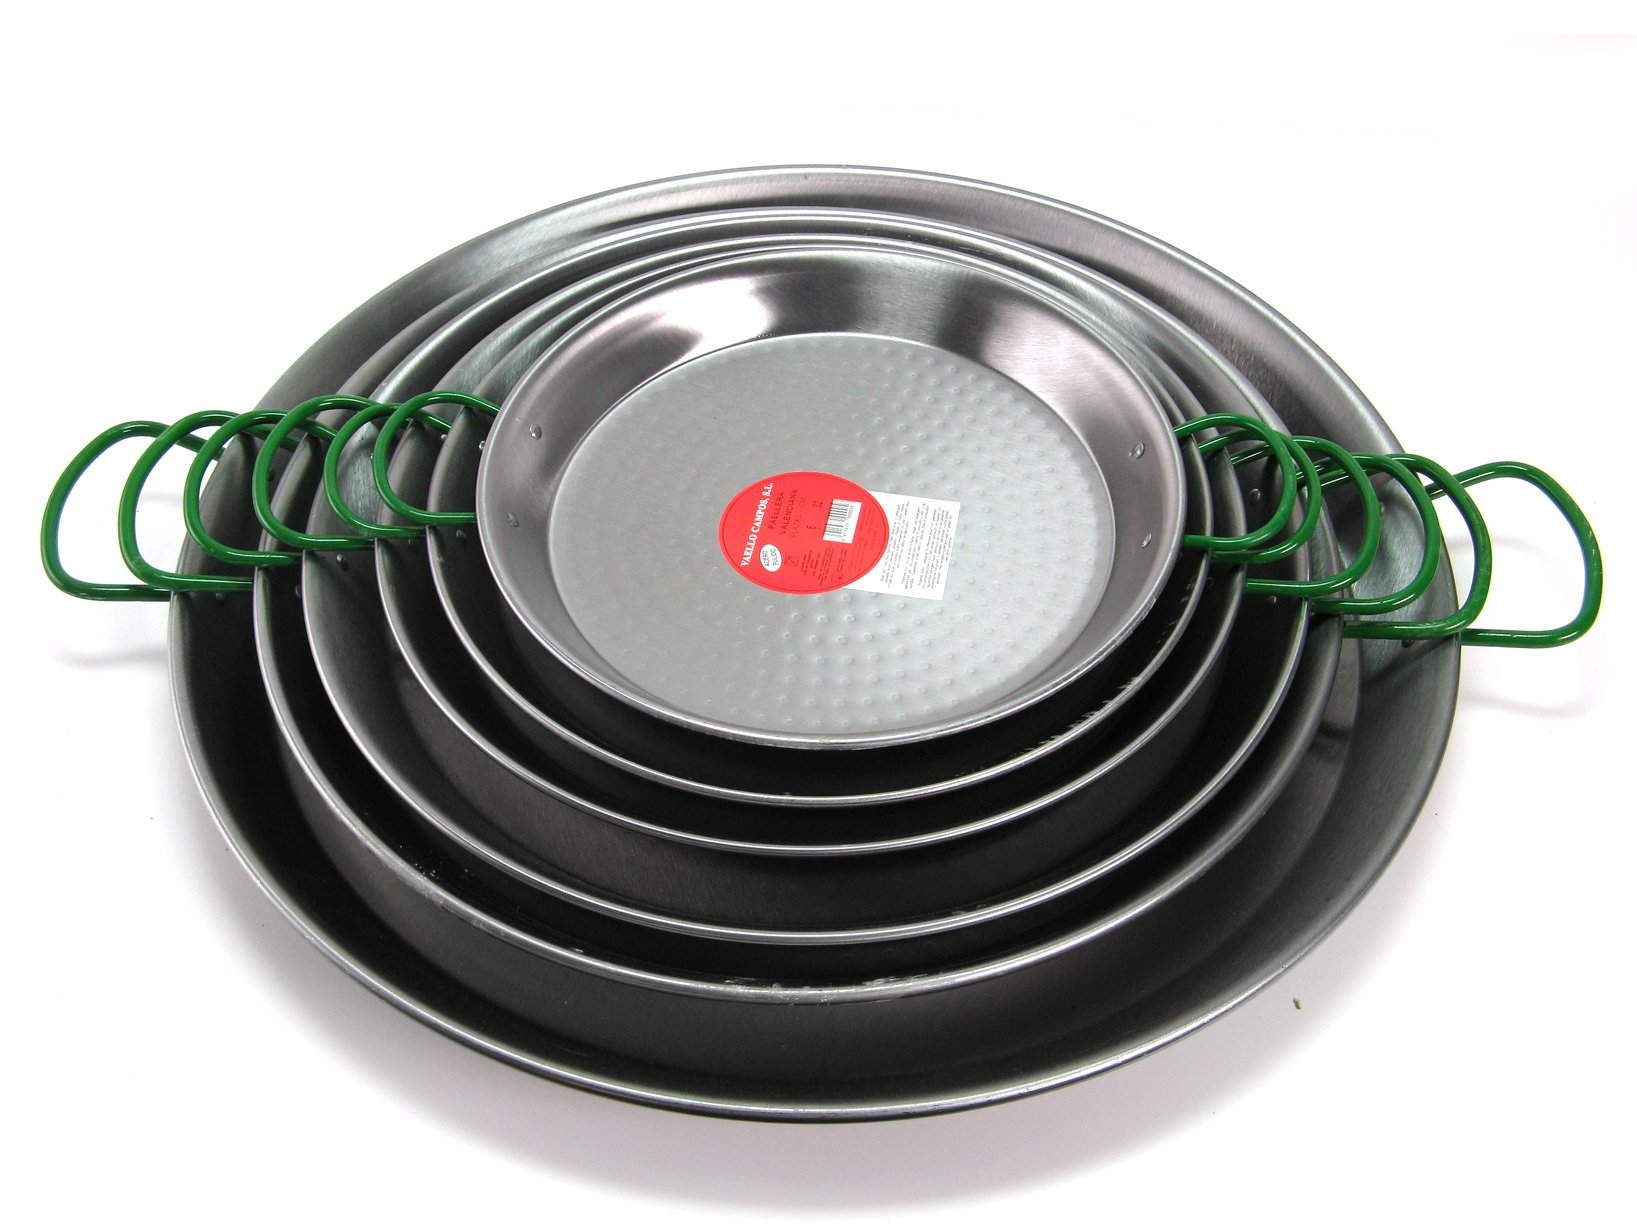 Castevia Polished Steel Valencian Paella pan 24Inch / 60cm / 20 Servings Polished by PAELLA WORLD